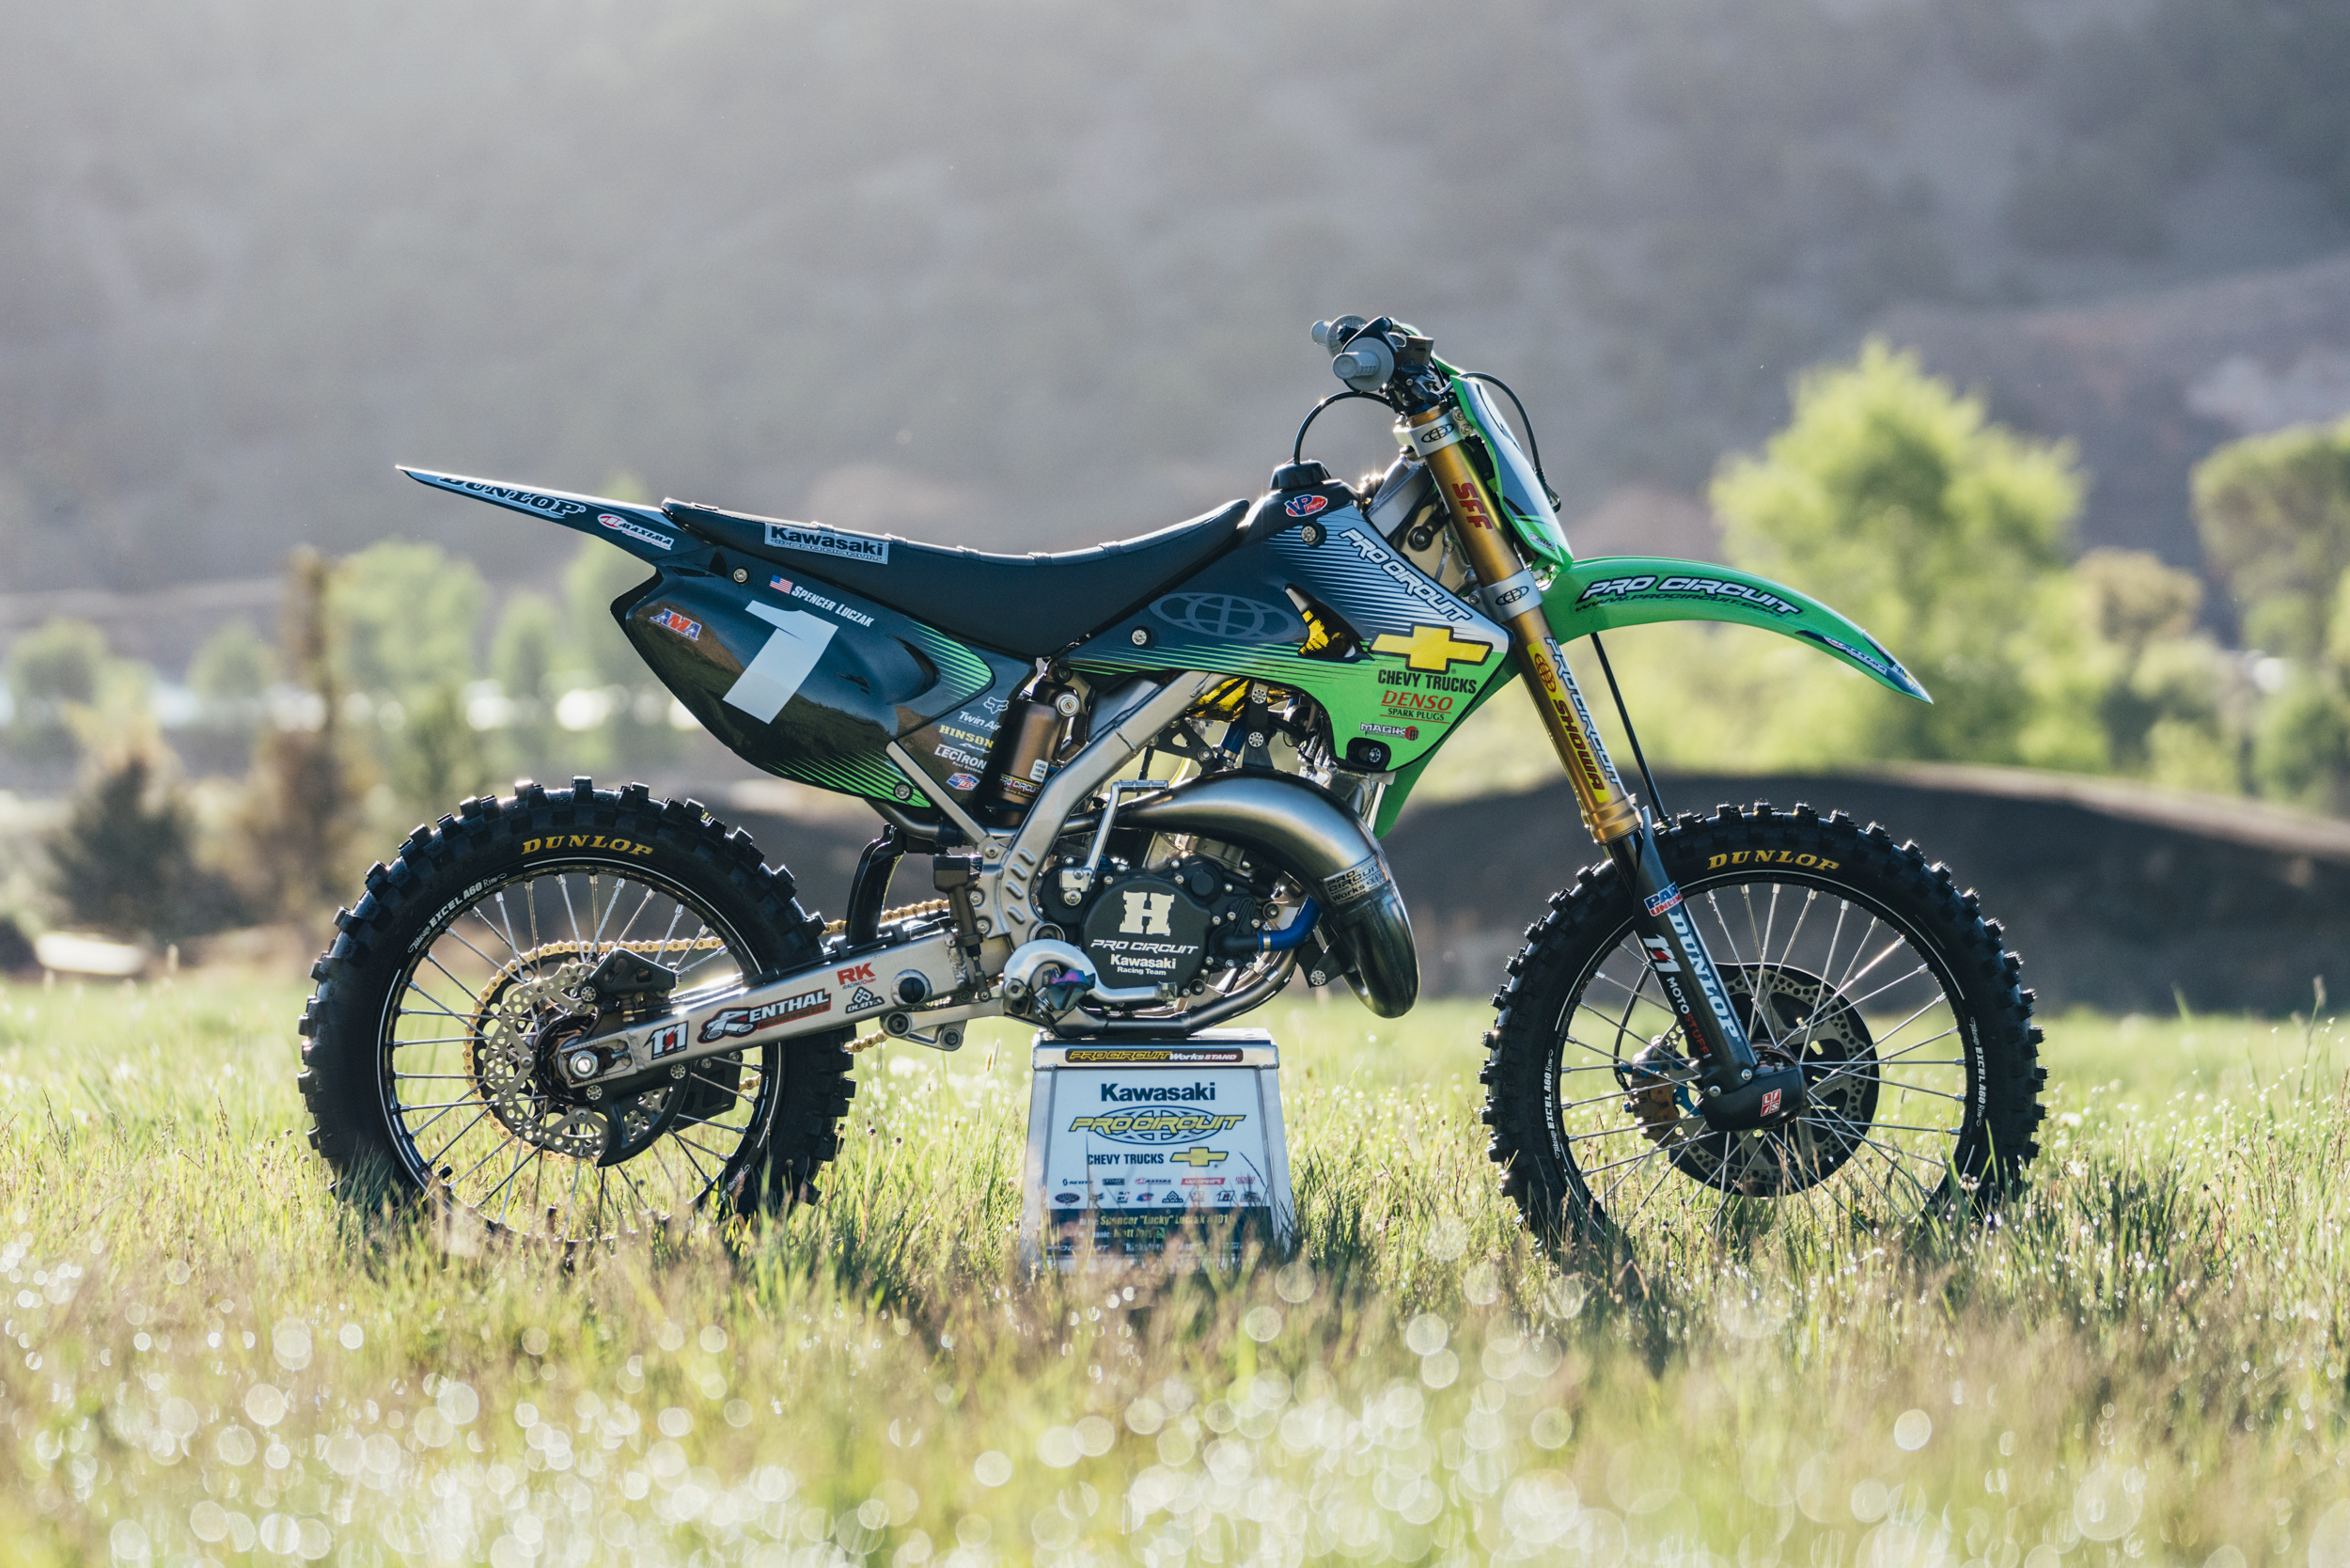 Not only does this bike look like a million dollars, but it rides like one! AJ Catanzaro couldn't believe how factory the bike felt.